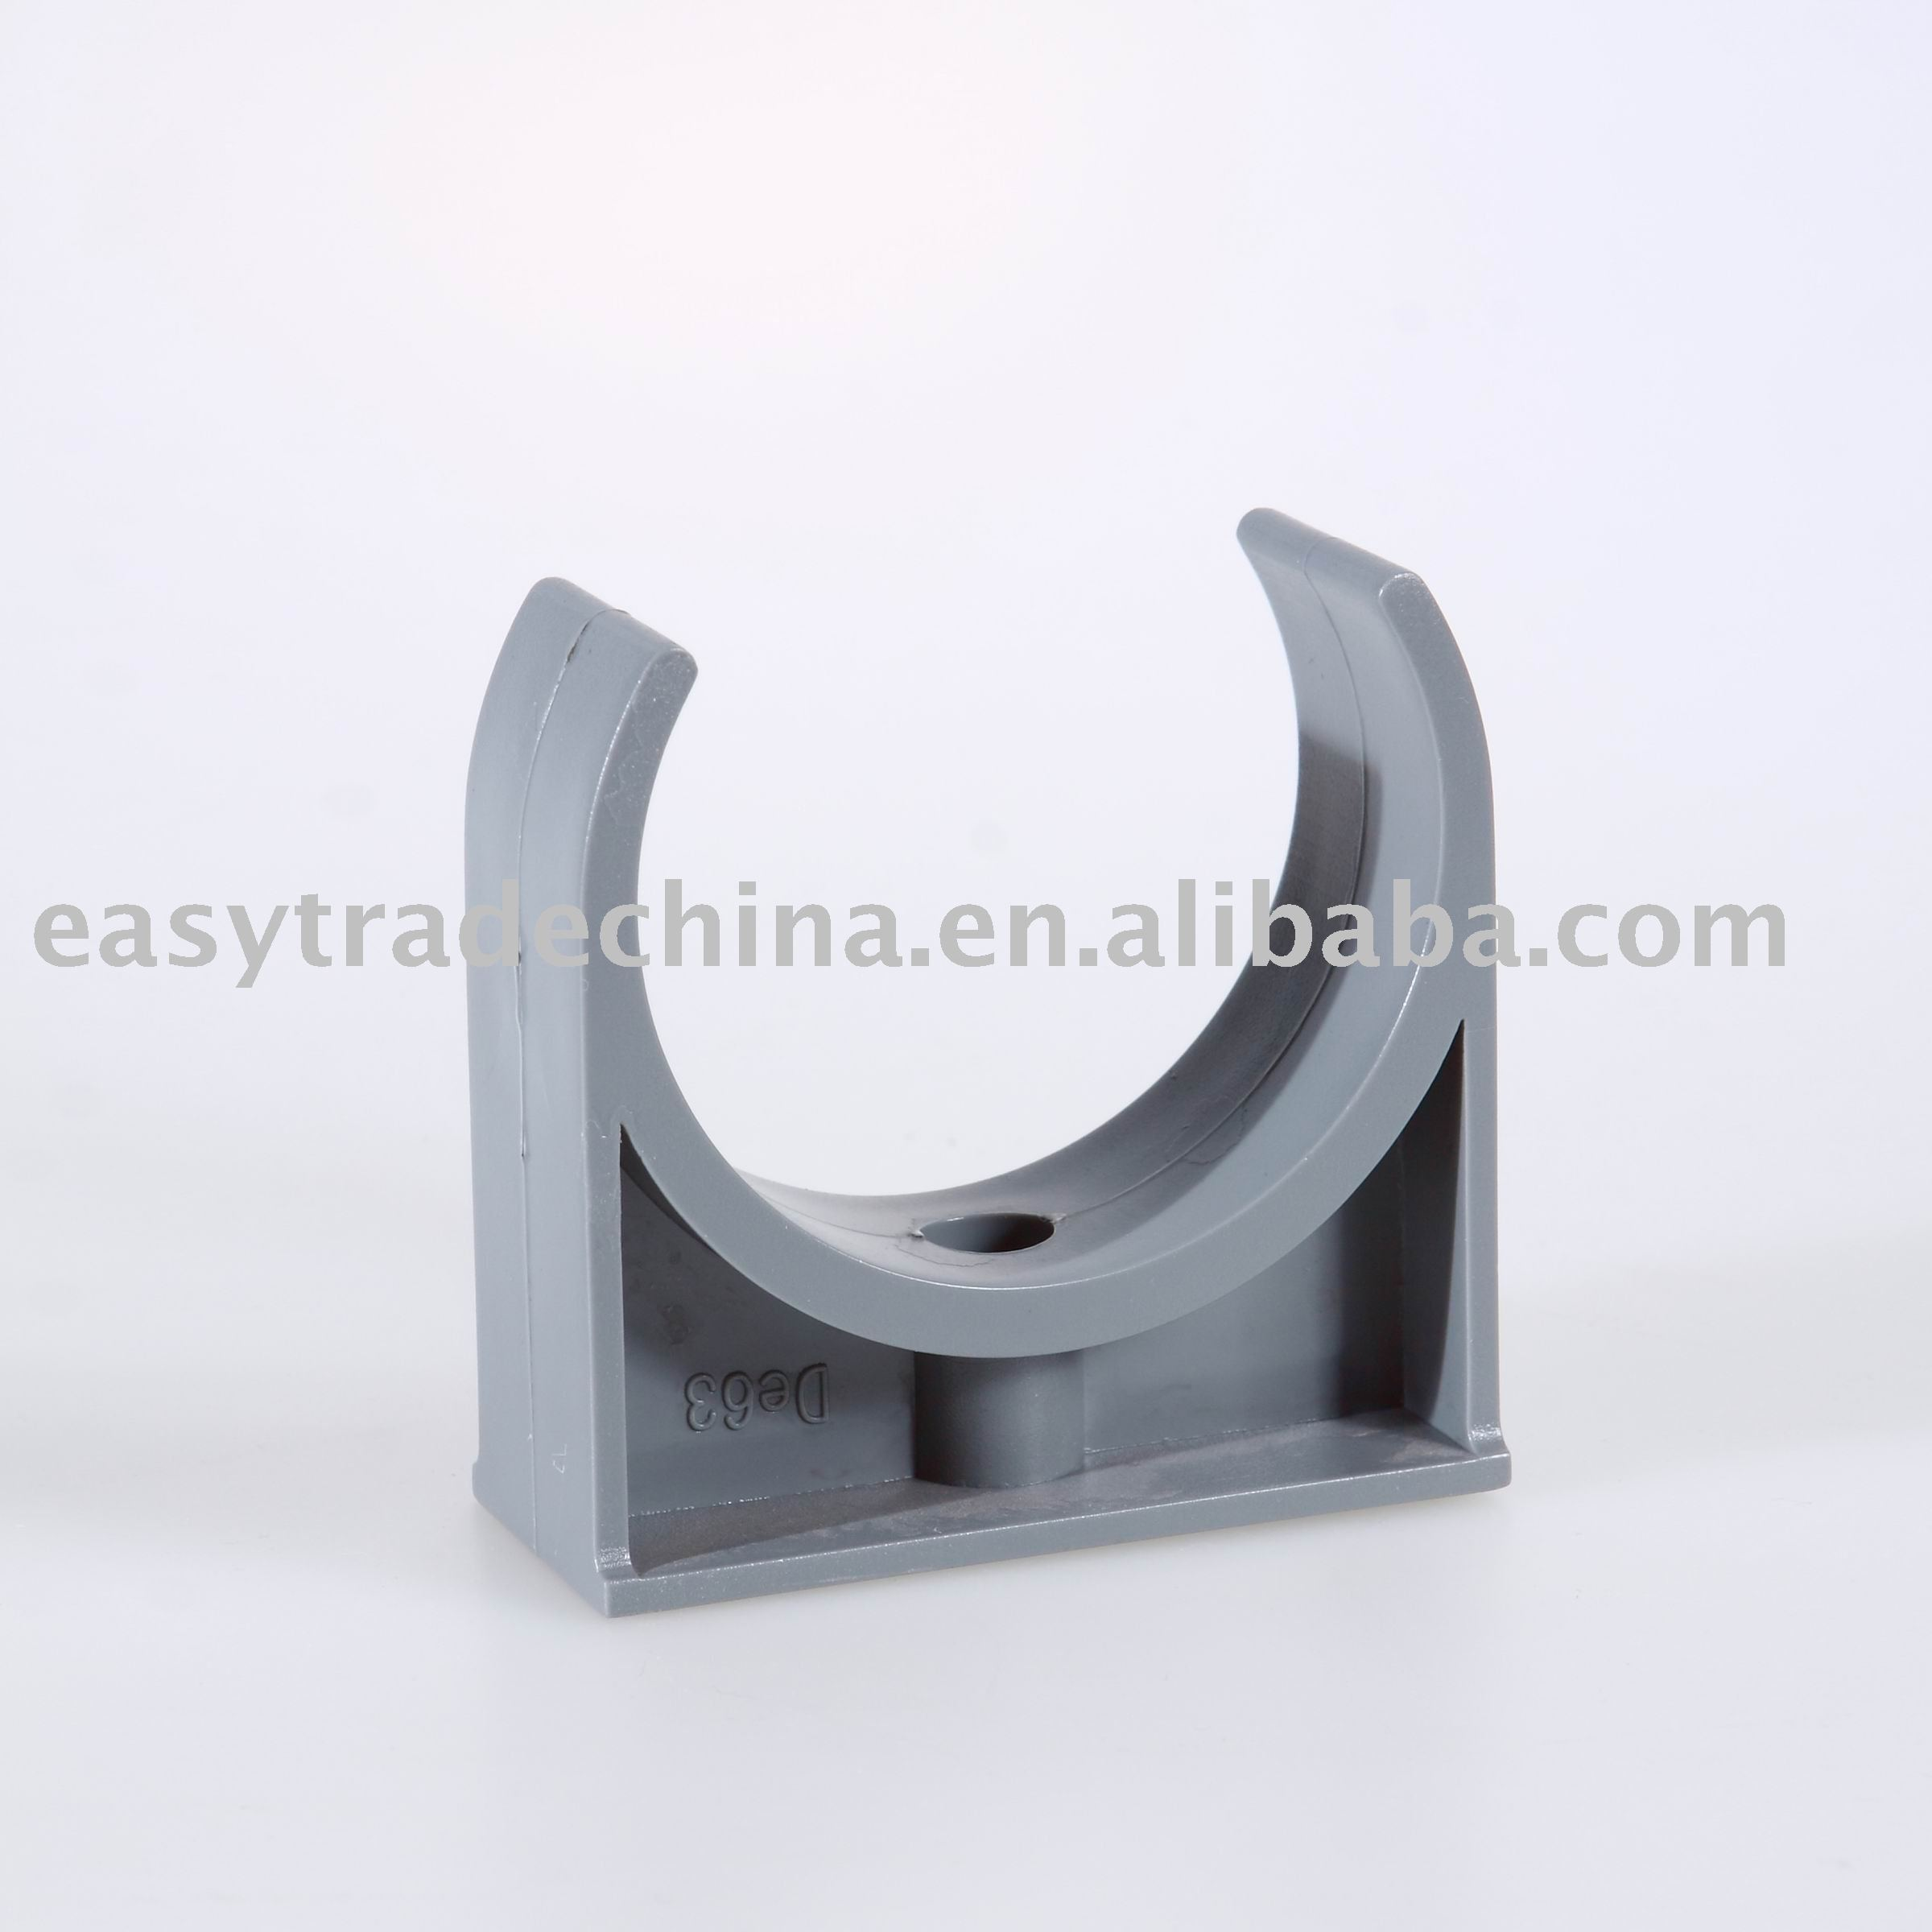 Pvc pipe clips bing images